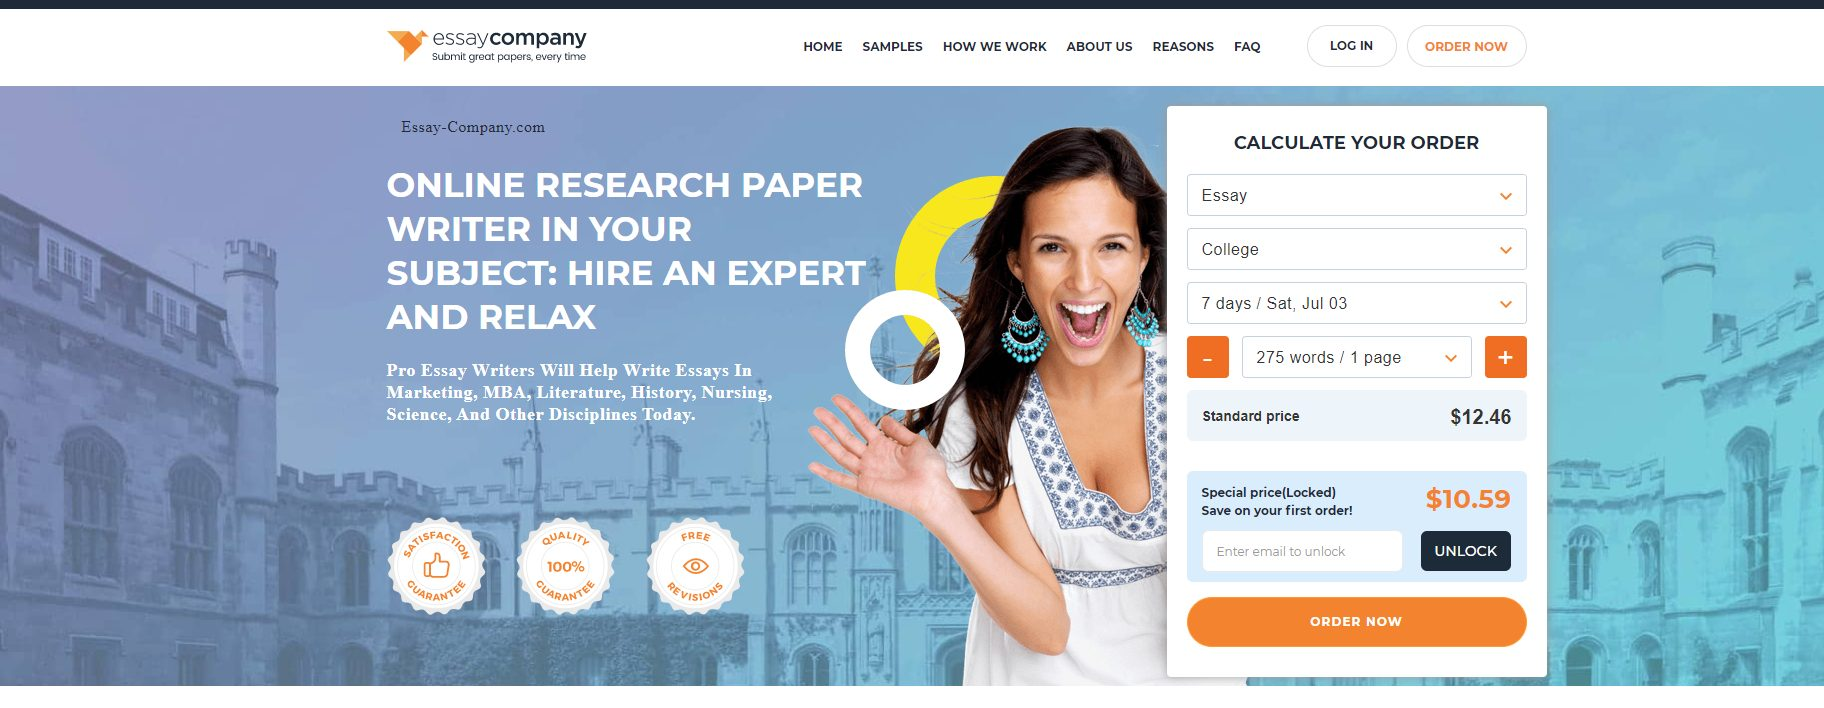 Essay Company - Best Paper Writing Services